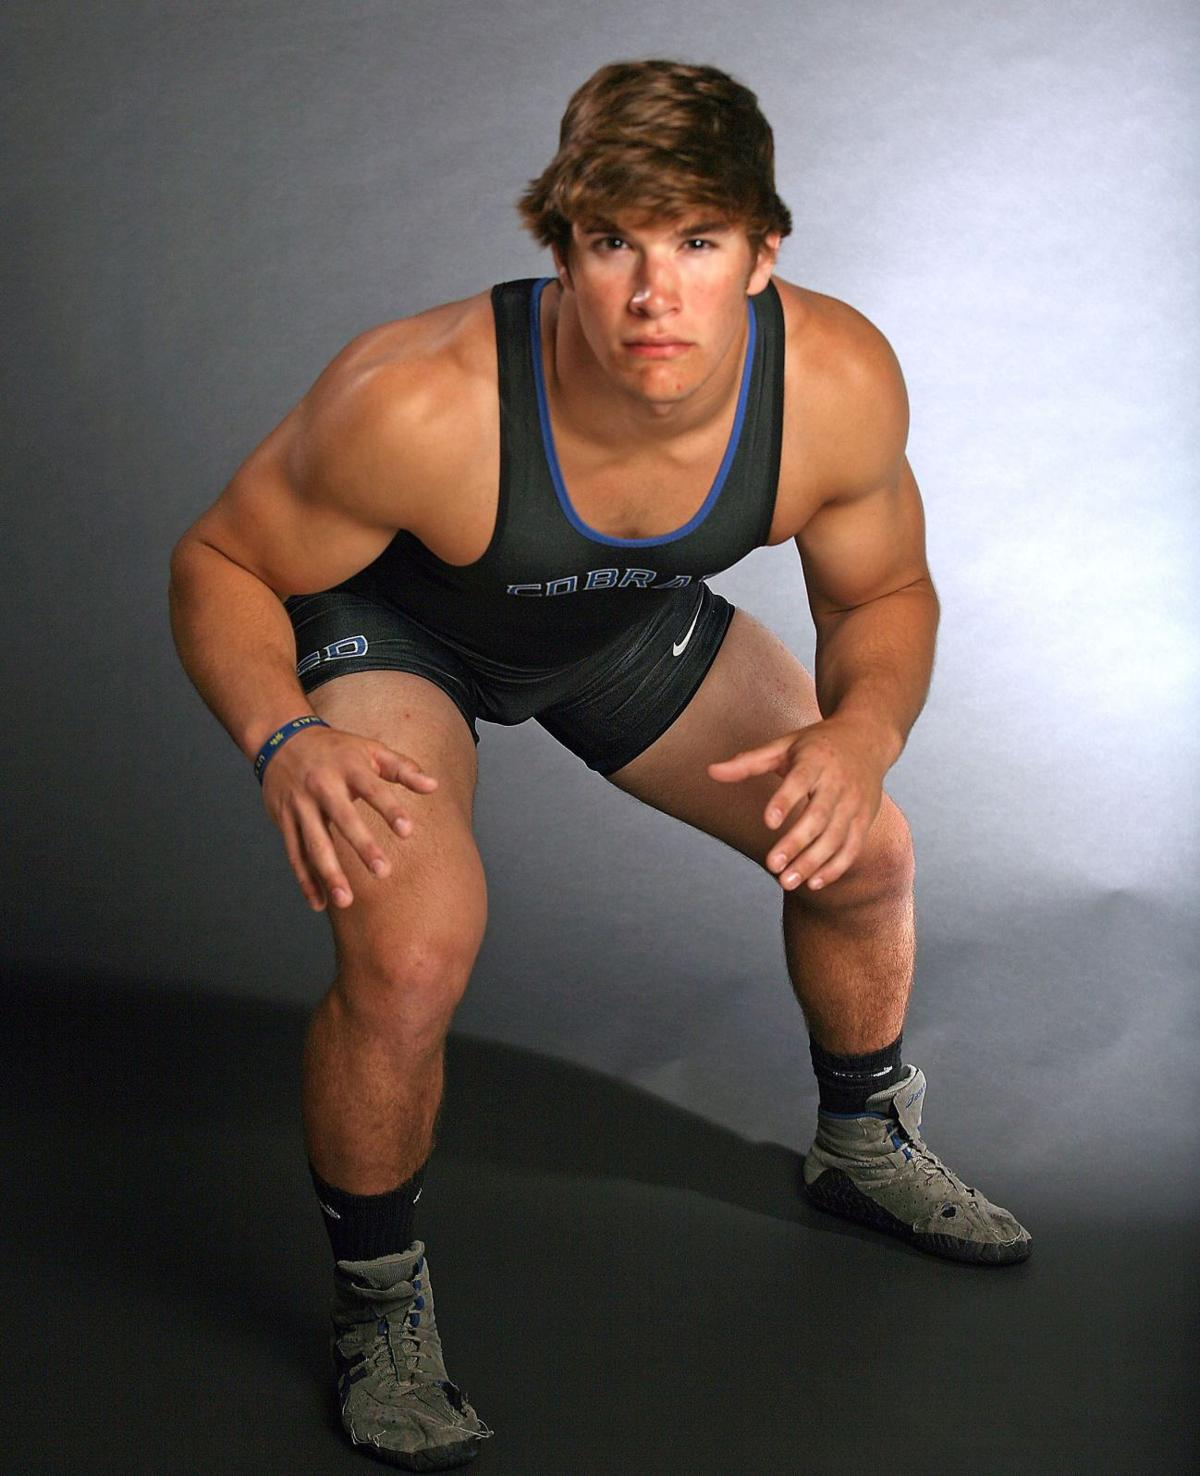 Cane Bay's Rudy repeats as wrestler of the year